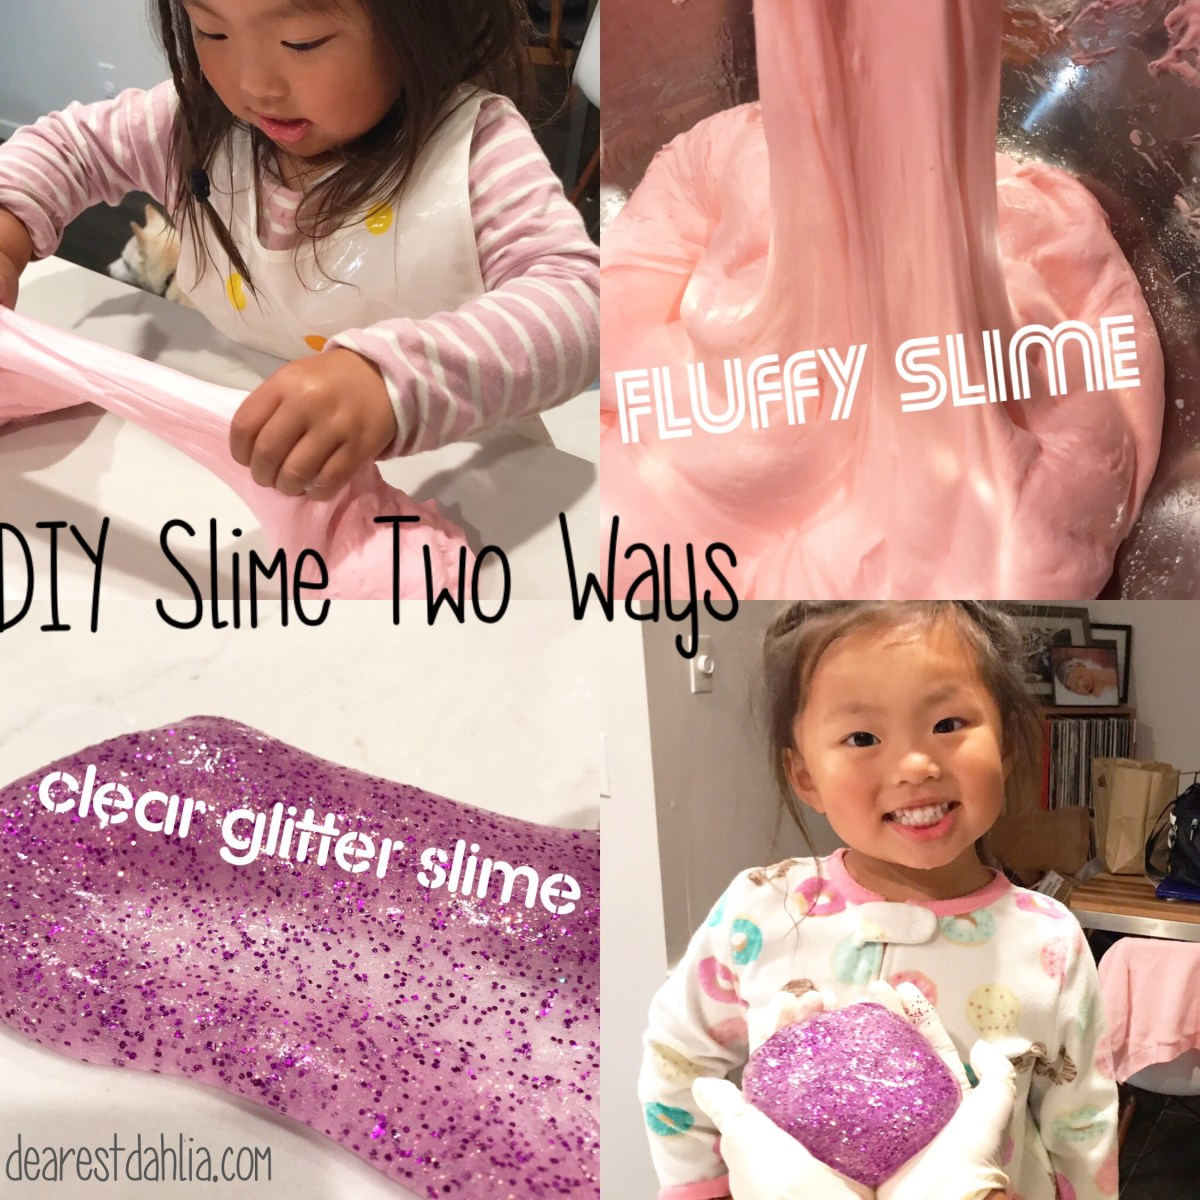 Make it Monday: DIY Slime Two Ways - Fluffly Slime and Glitter Slime